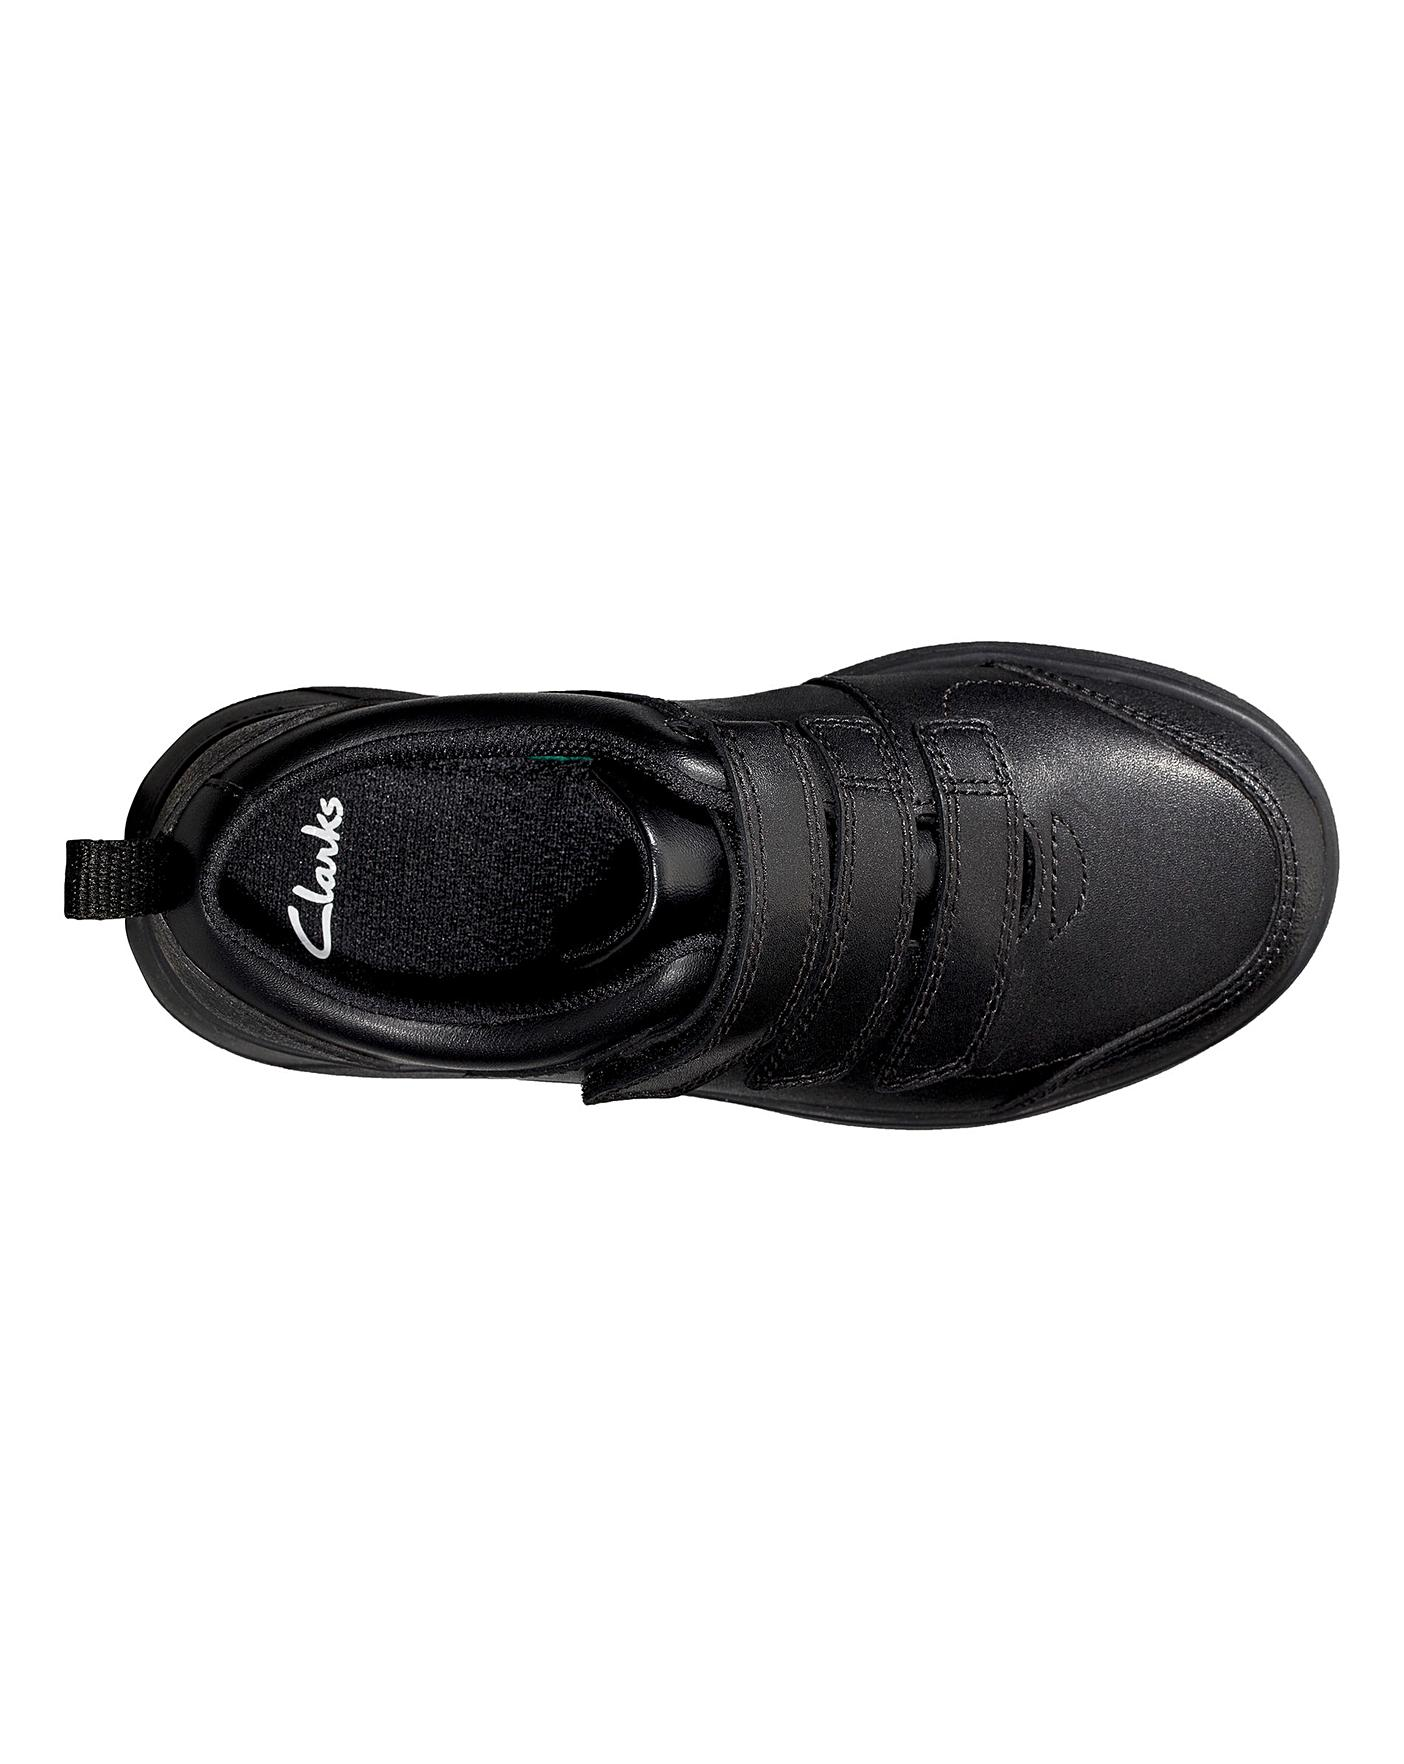 Clarks Scape Sky Youth